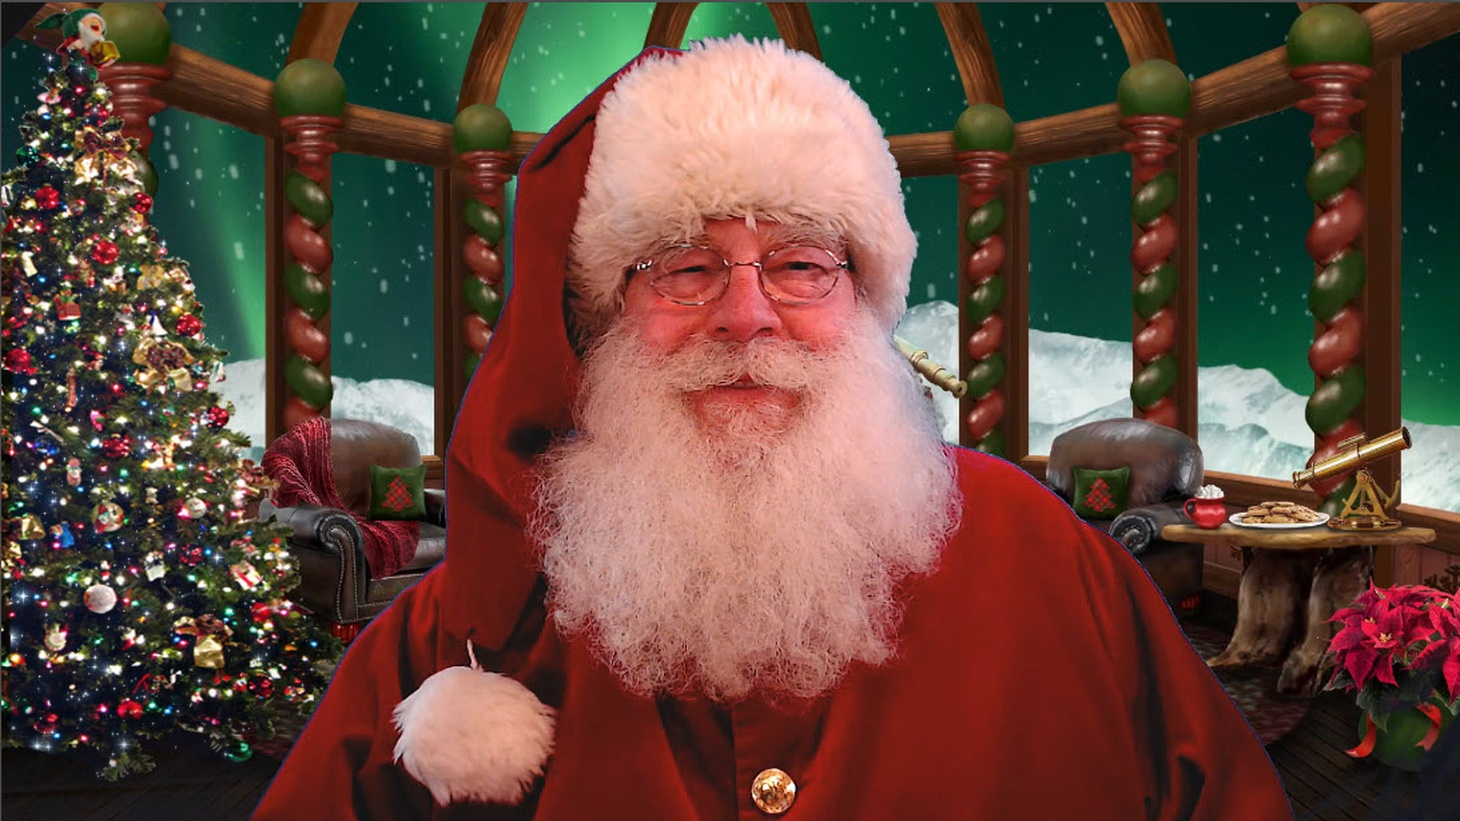 During his online visits, Santa Ed appears from the North Pole with the shimmering Aurora Borealis appearing through the windows of his digital background designed by his wife. Going virtual this year has allowed him to more than quadruple the number of visits he usually has — from 100 or so to in excess of 400.